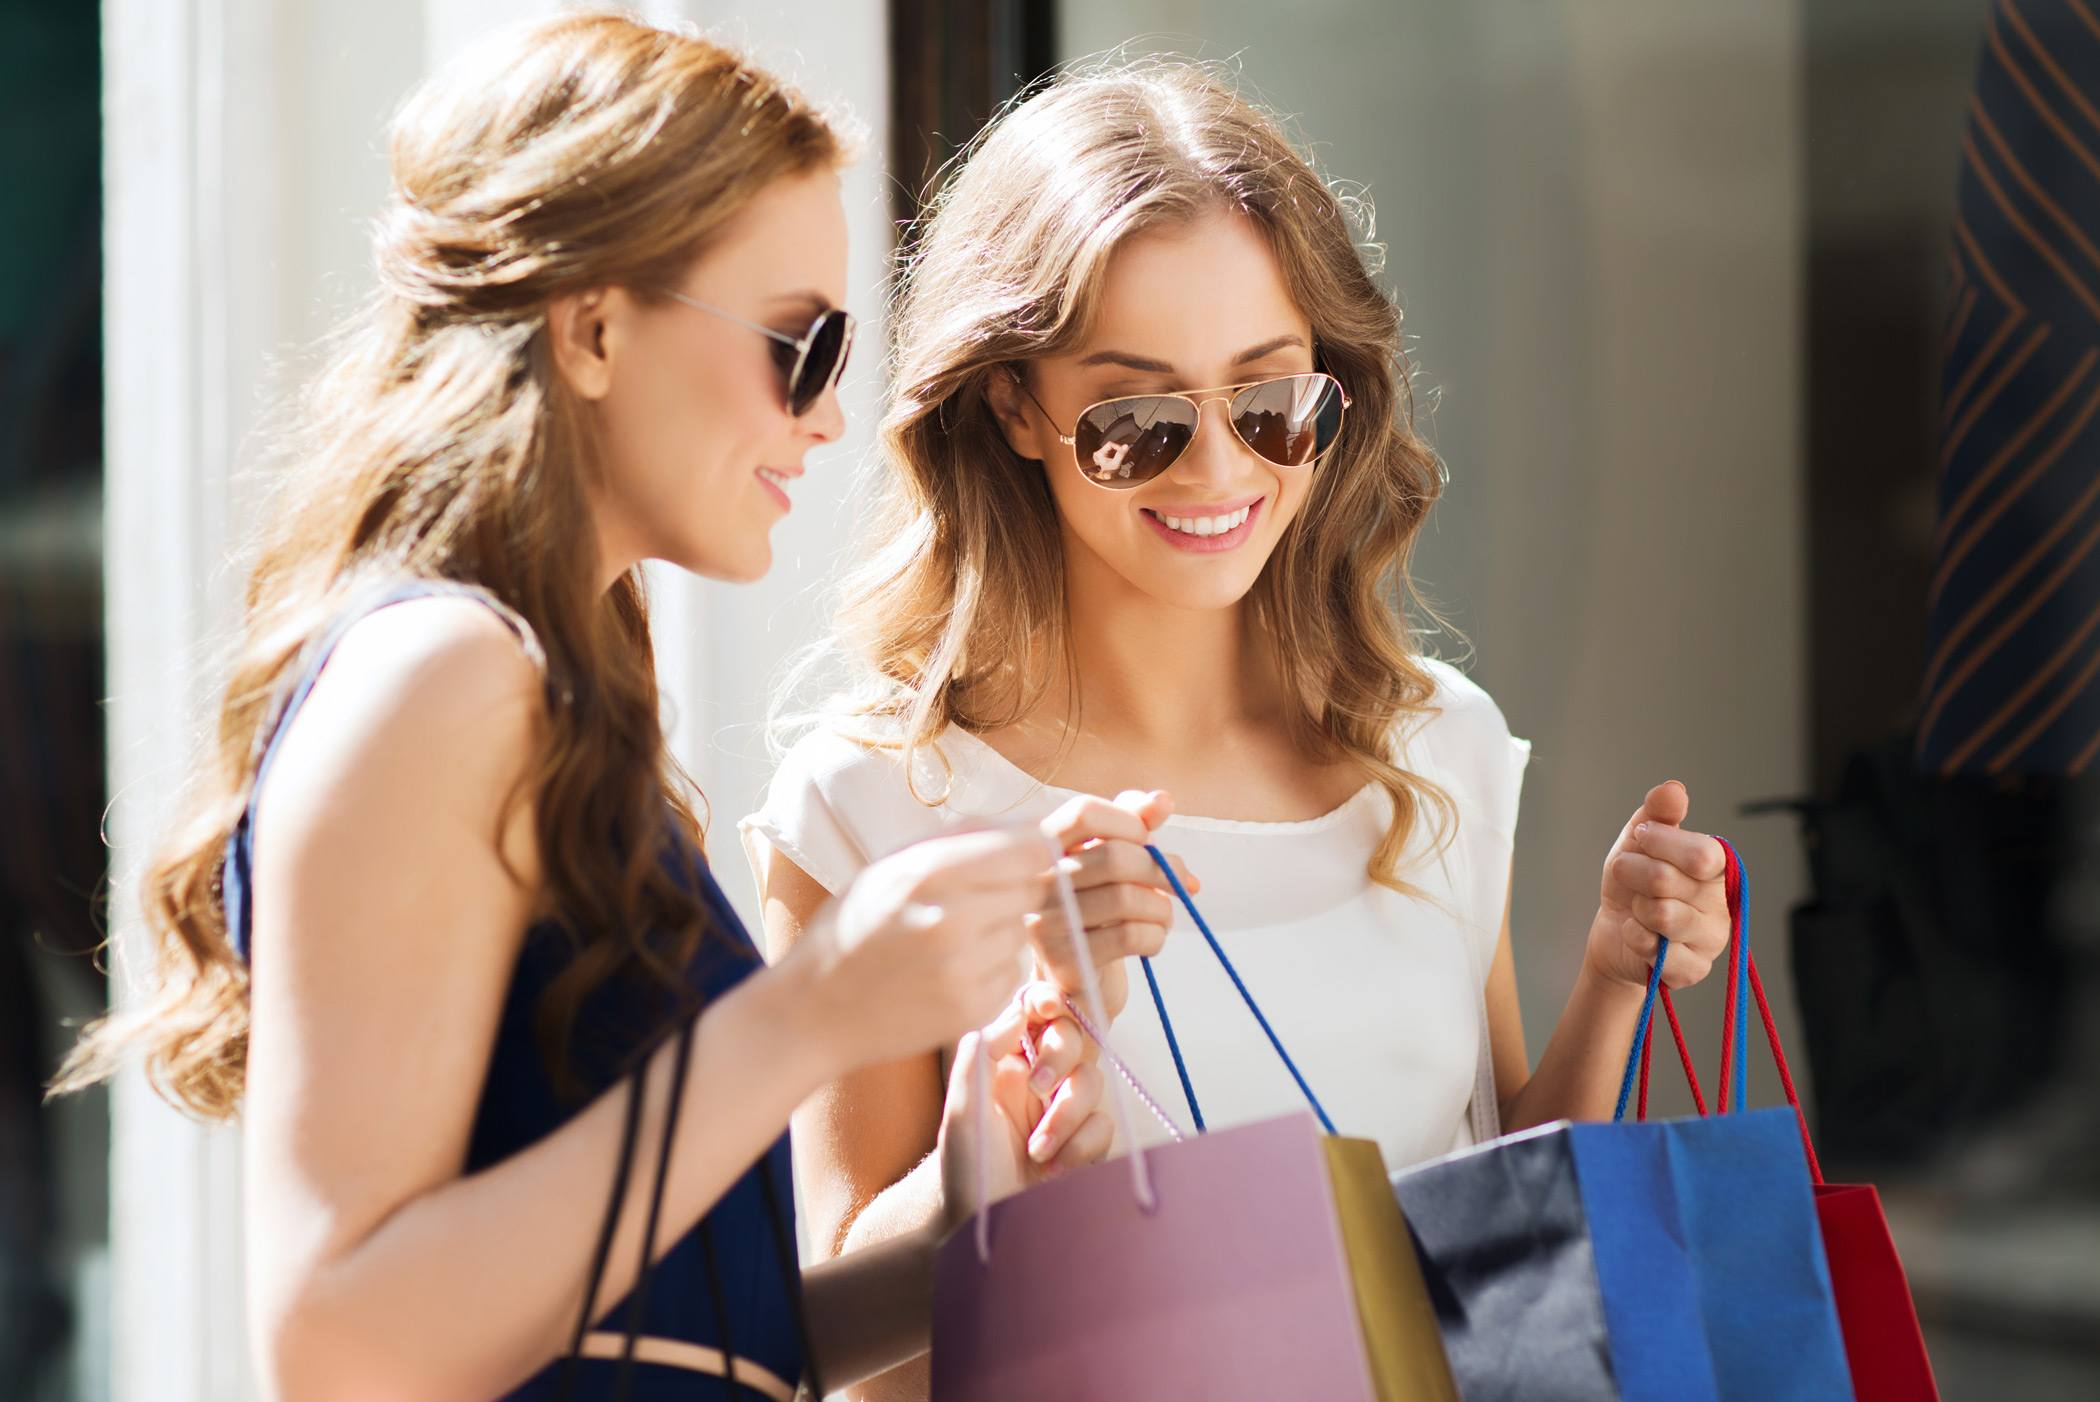 avenue-of-the-arts-costa-mesa-shopping-package